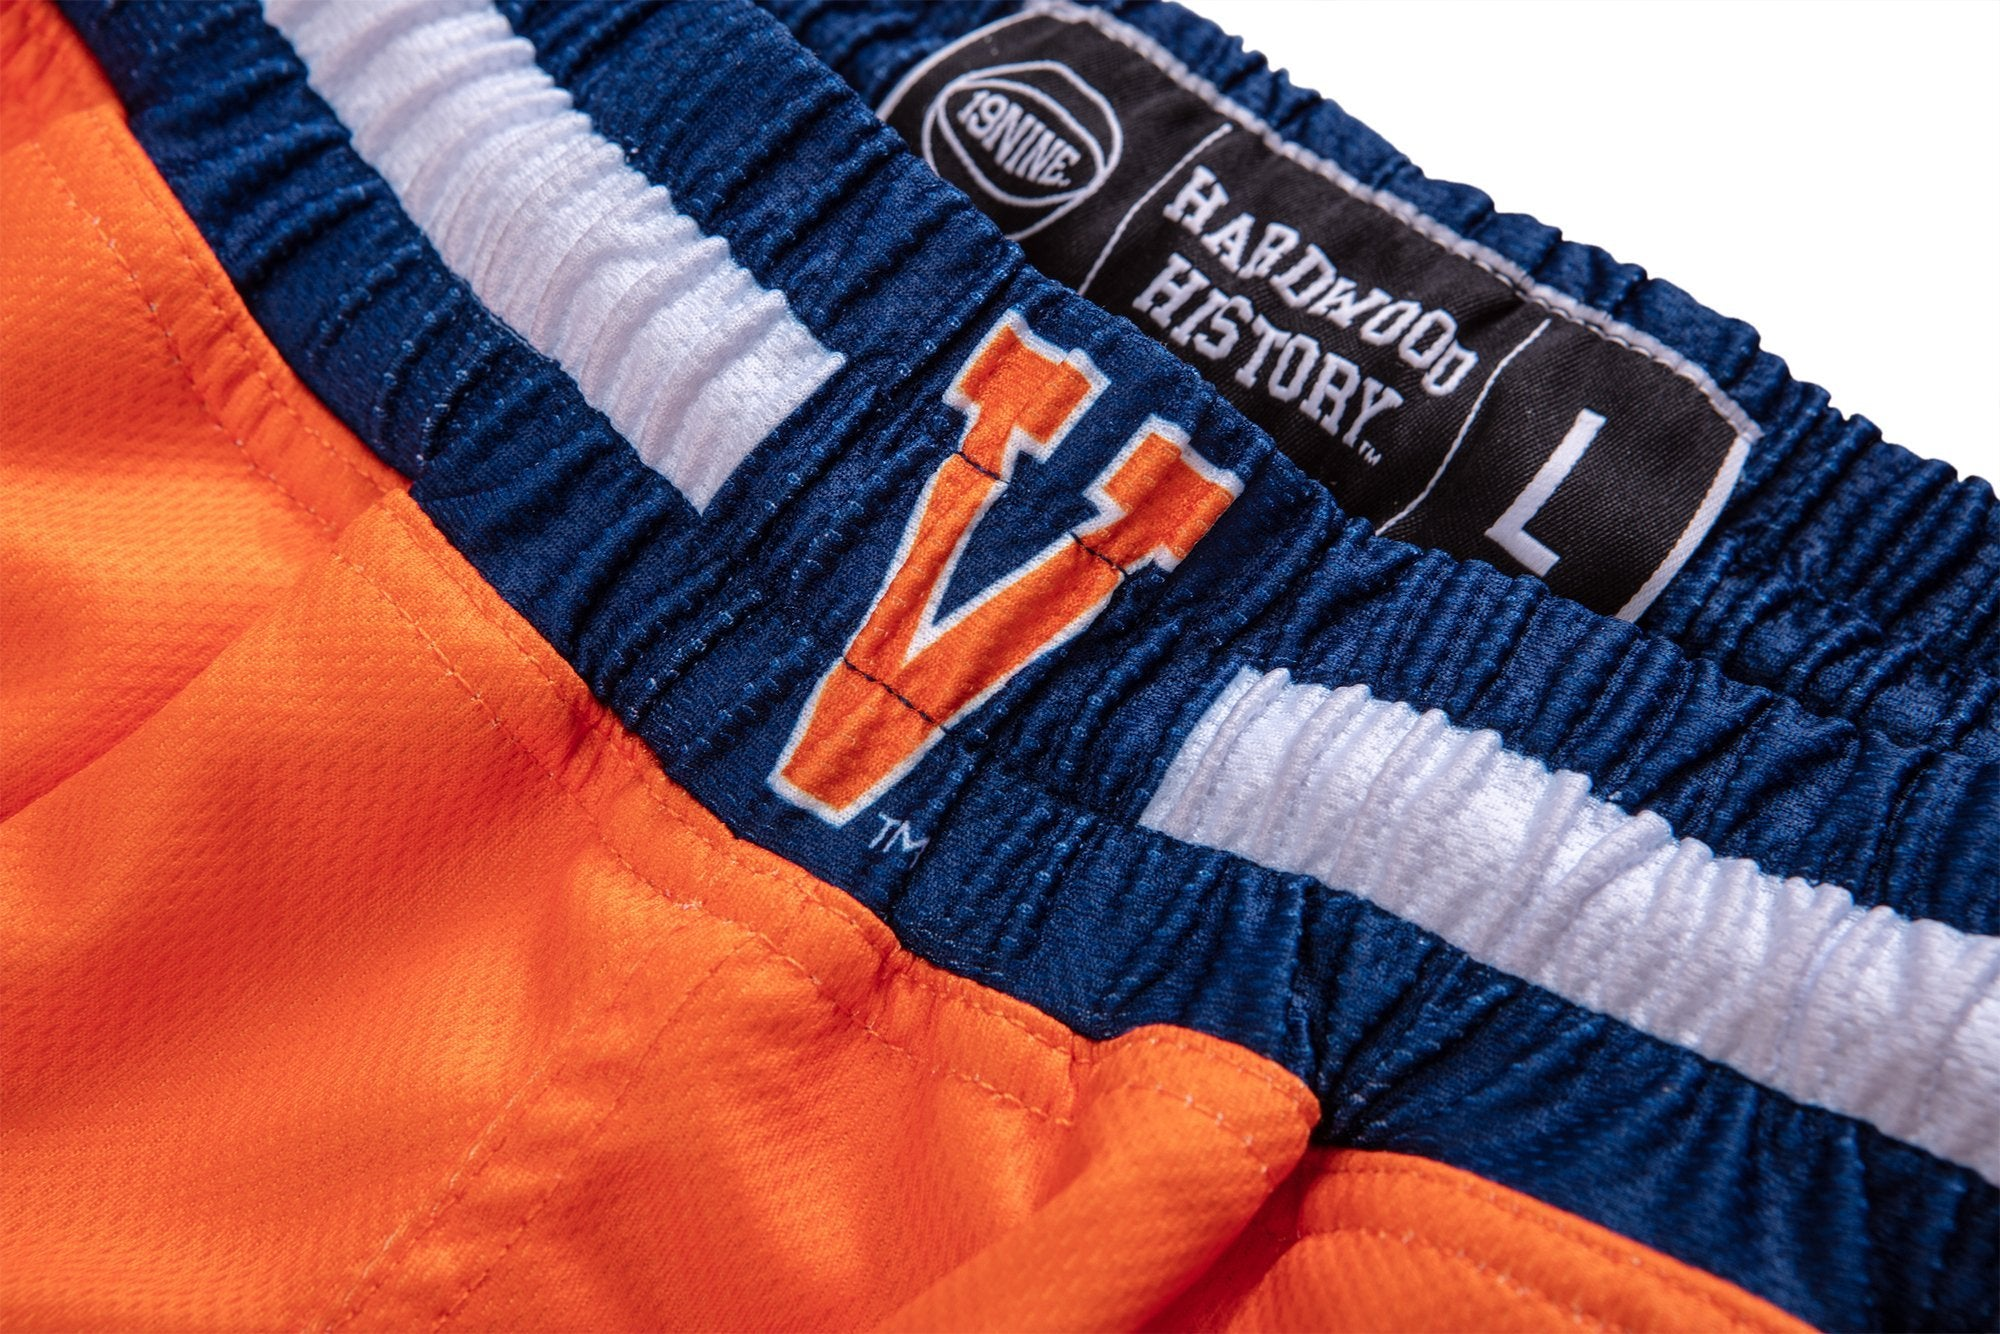 Virginia Cavaliers 1980-1981 Retro Shorts - SLAM